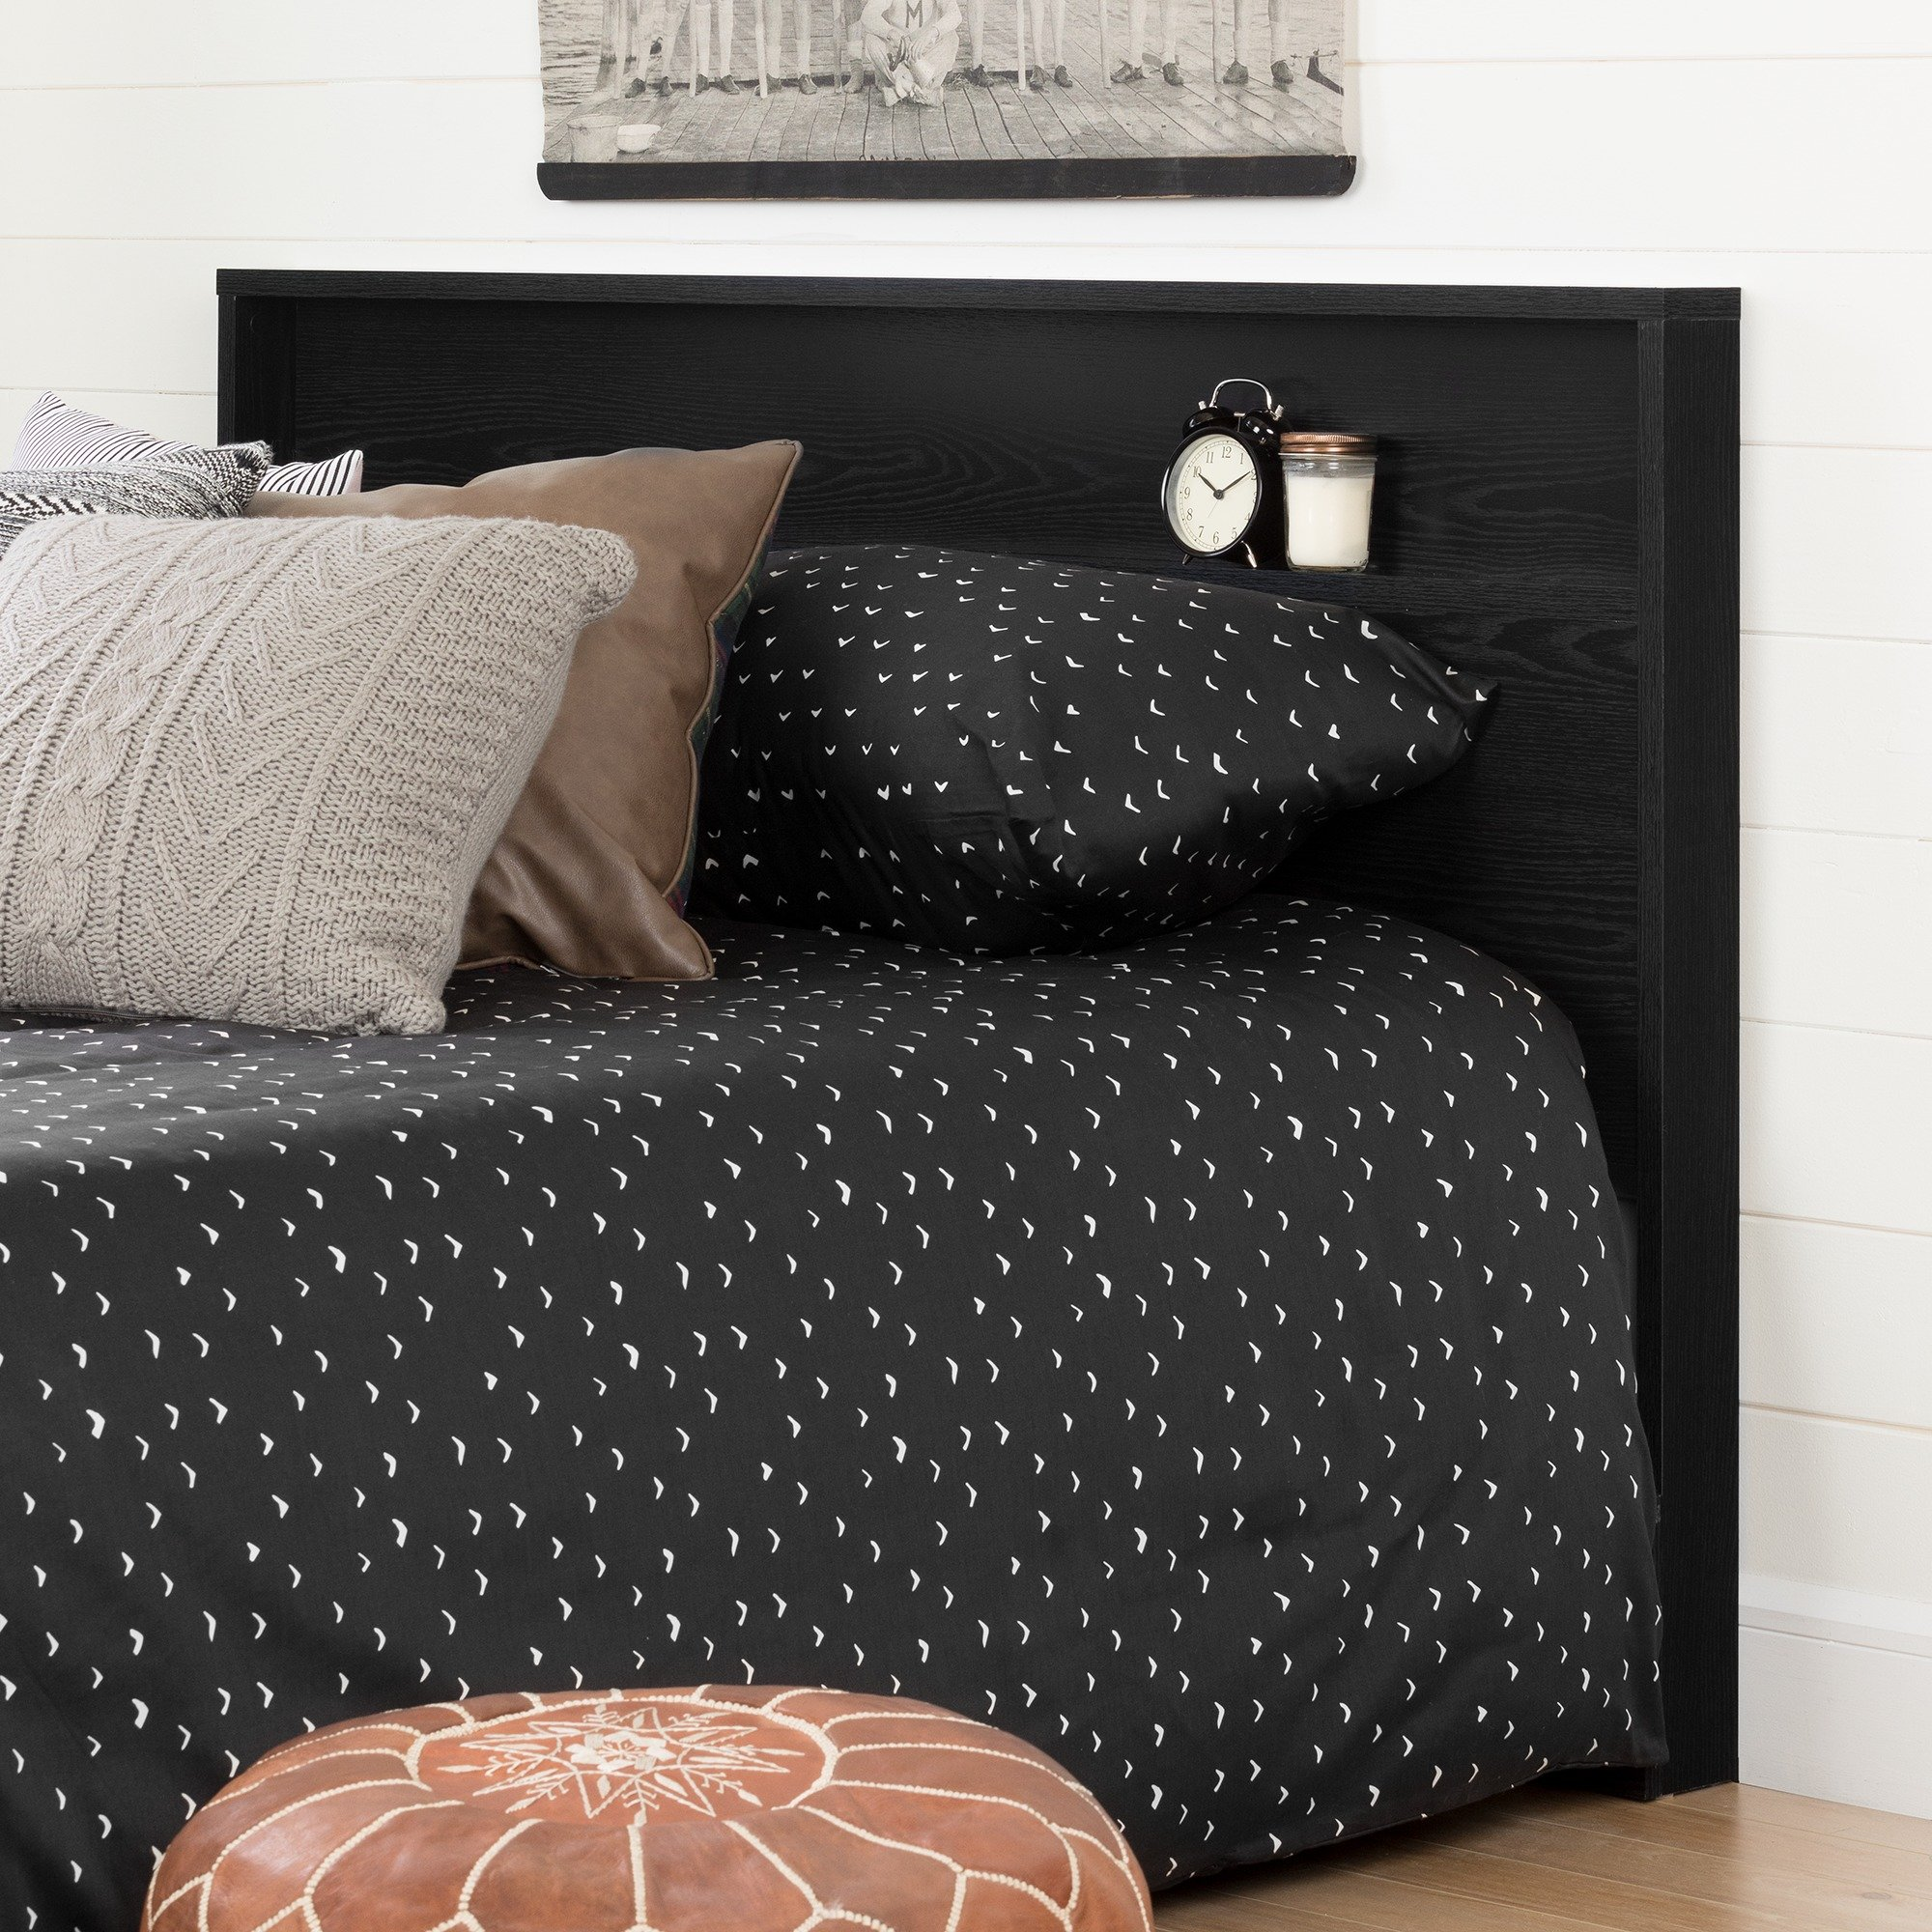 South Shore 11290 Holland Headboard (54/60''), Full/Queen, Black Oak by South Shore (Image #2)